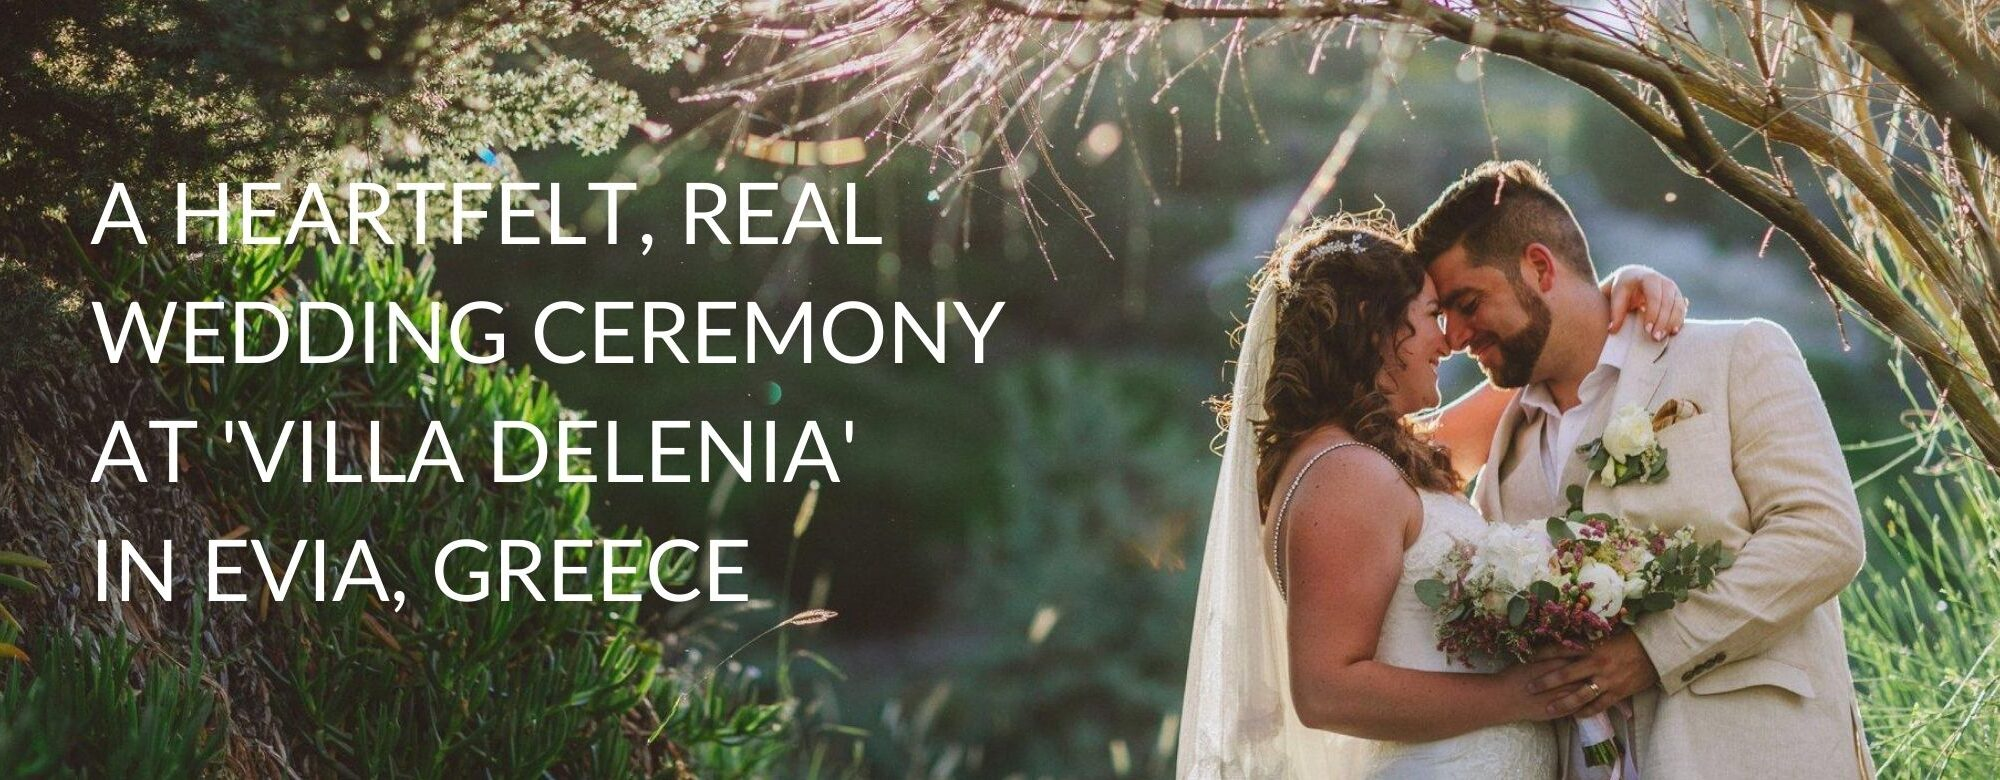 A newly married couple after their wedding ceremony at Villa Delenia in Evia, Greece